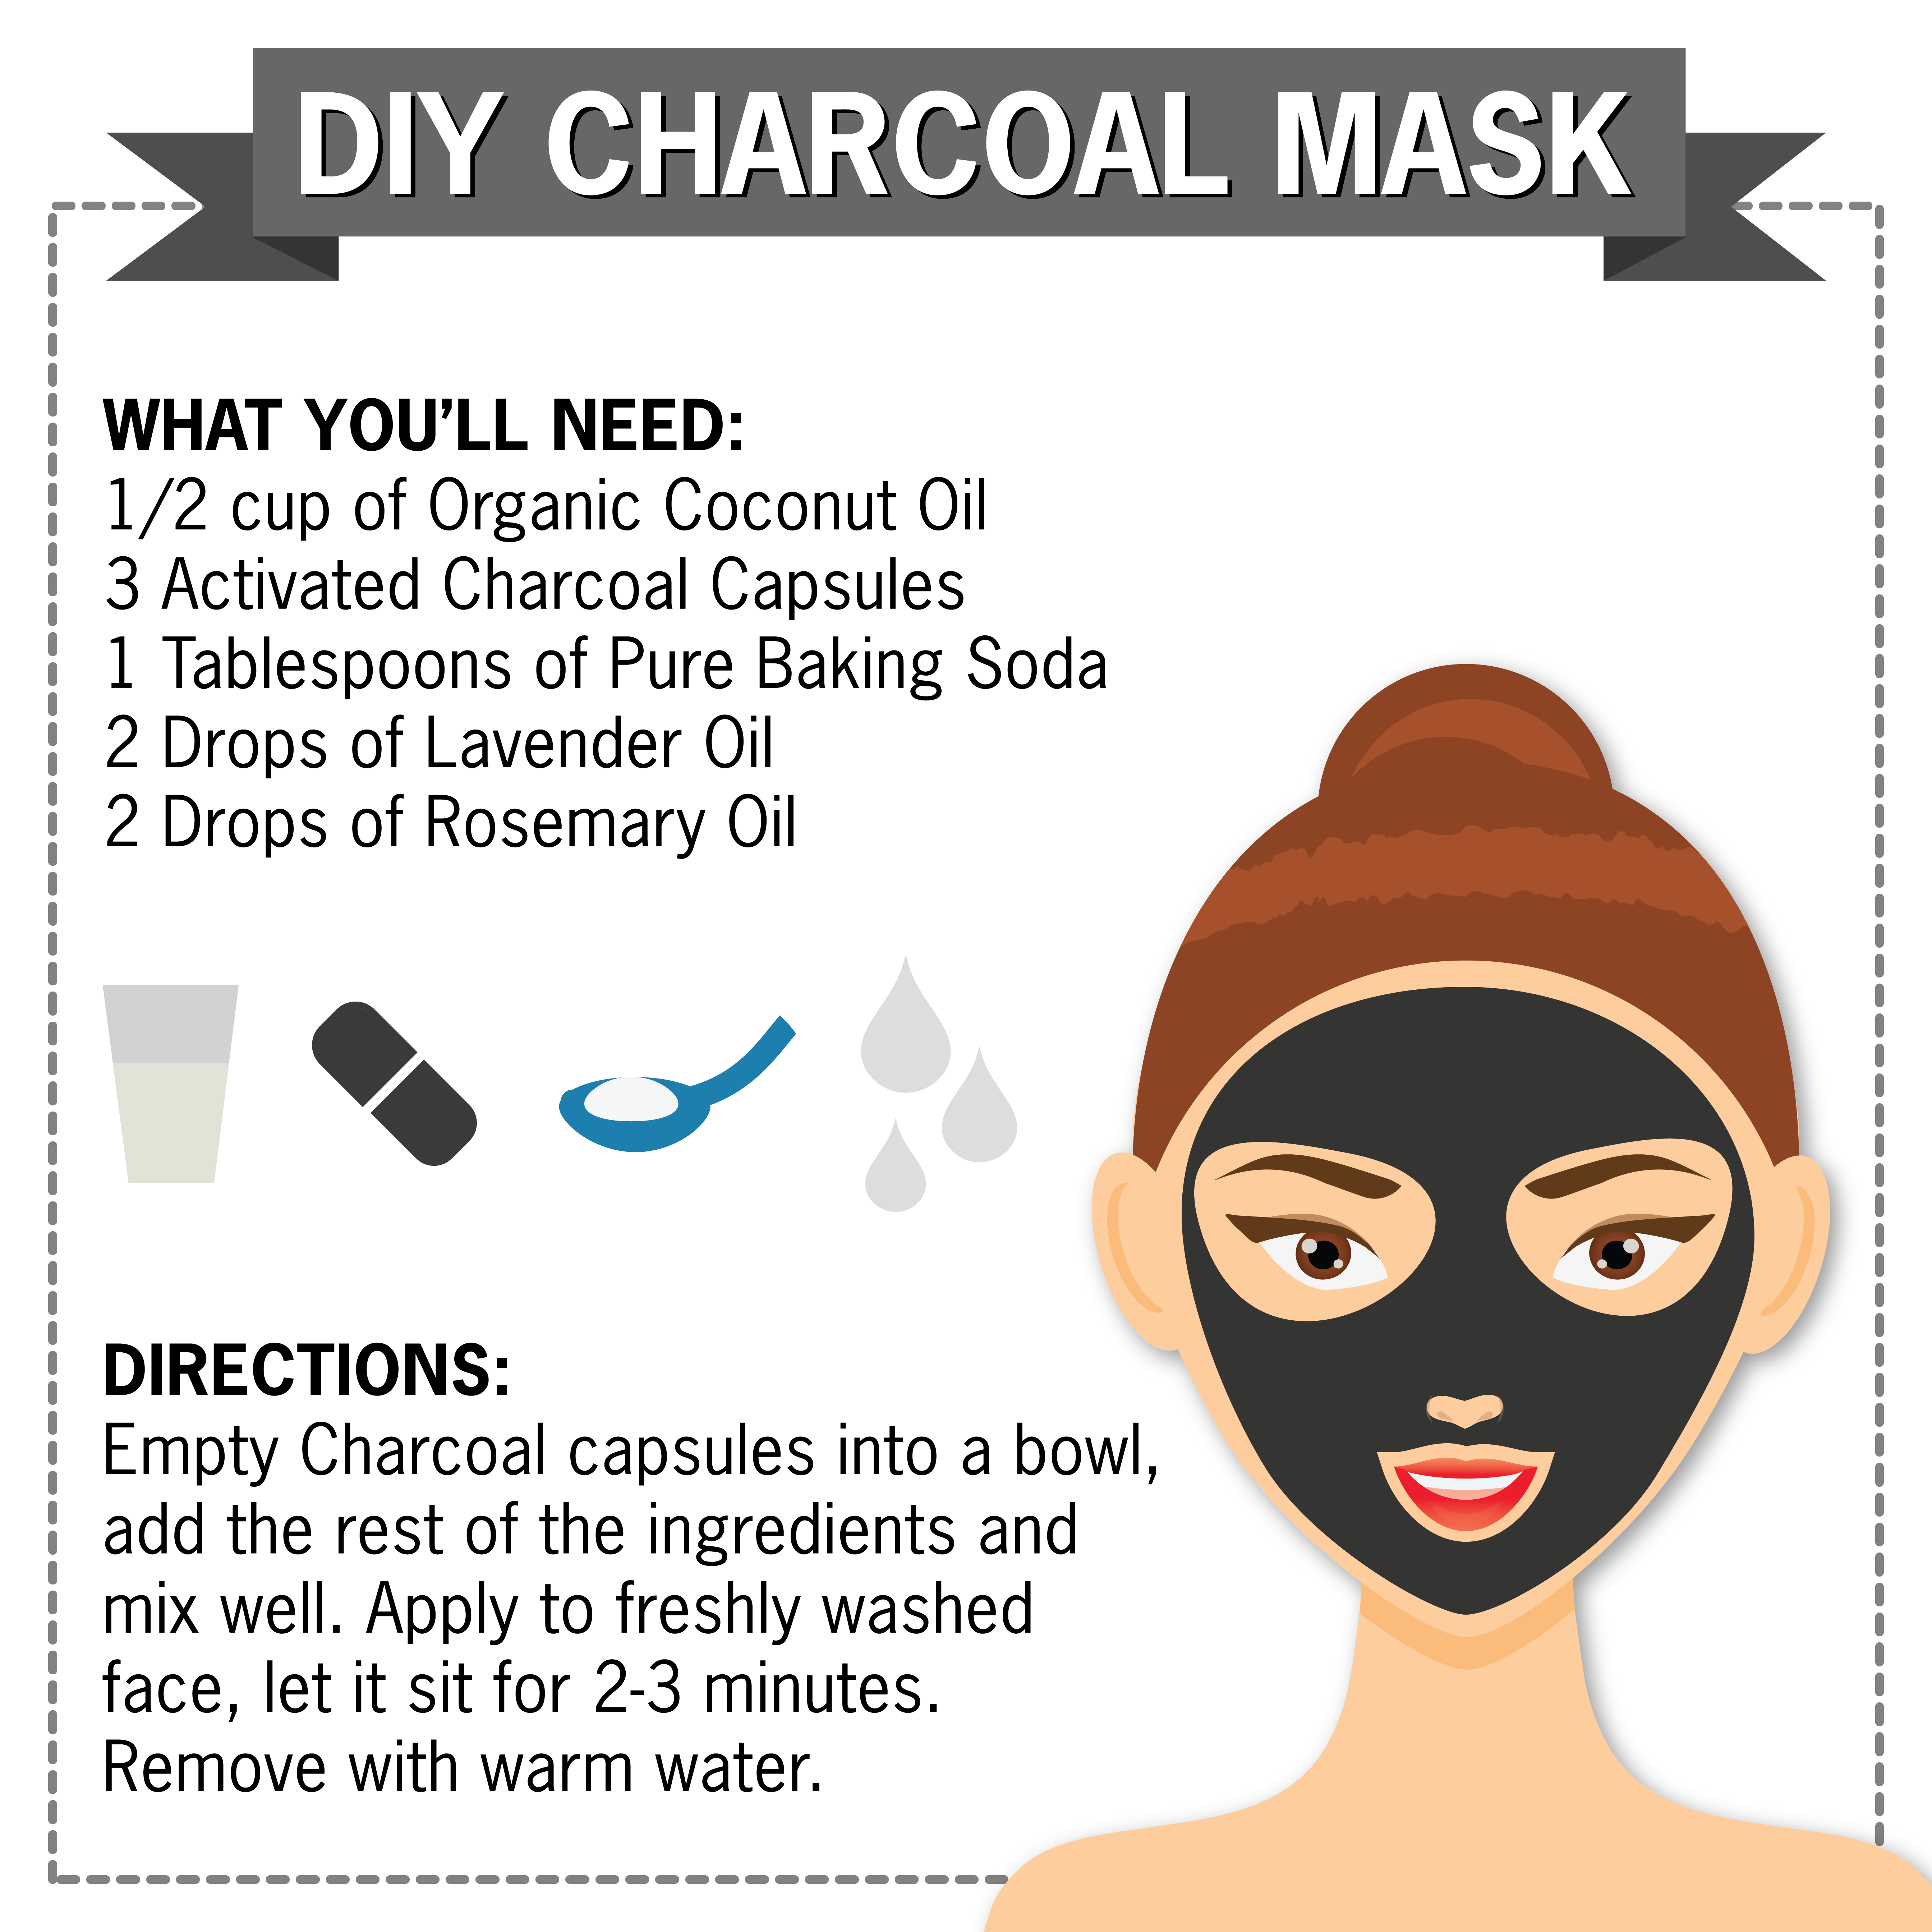 Diy Charcoal Face Mask: Nature's Truth DIY Charcoal Mask Activated Charcoal